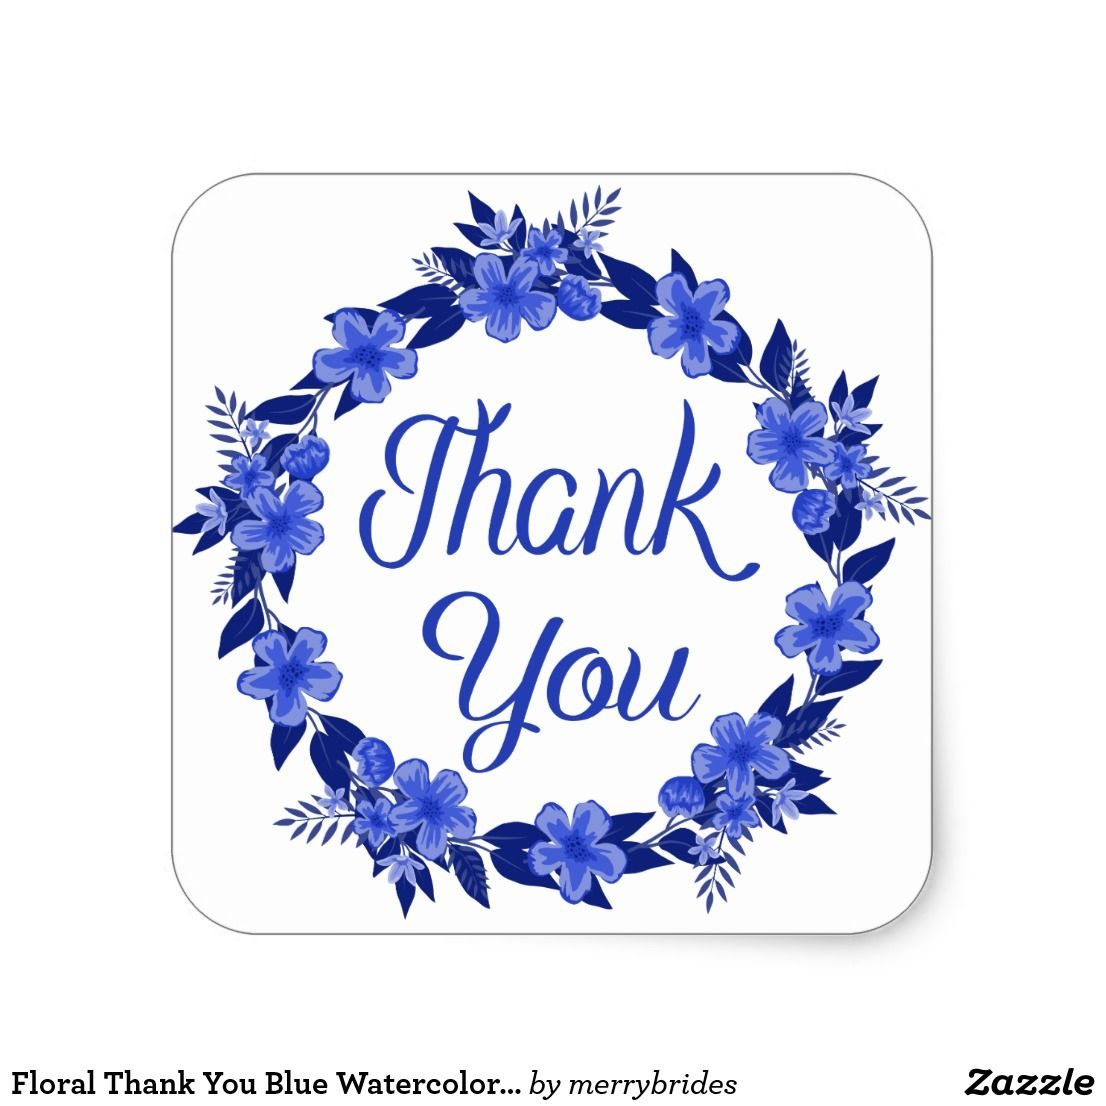 Floral Thank You Blue Watercolor Flower Wreath Square Sticker Zazzle Com Watercolor Flower Wreath Watercolor Flowers Blue Watercolor